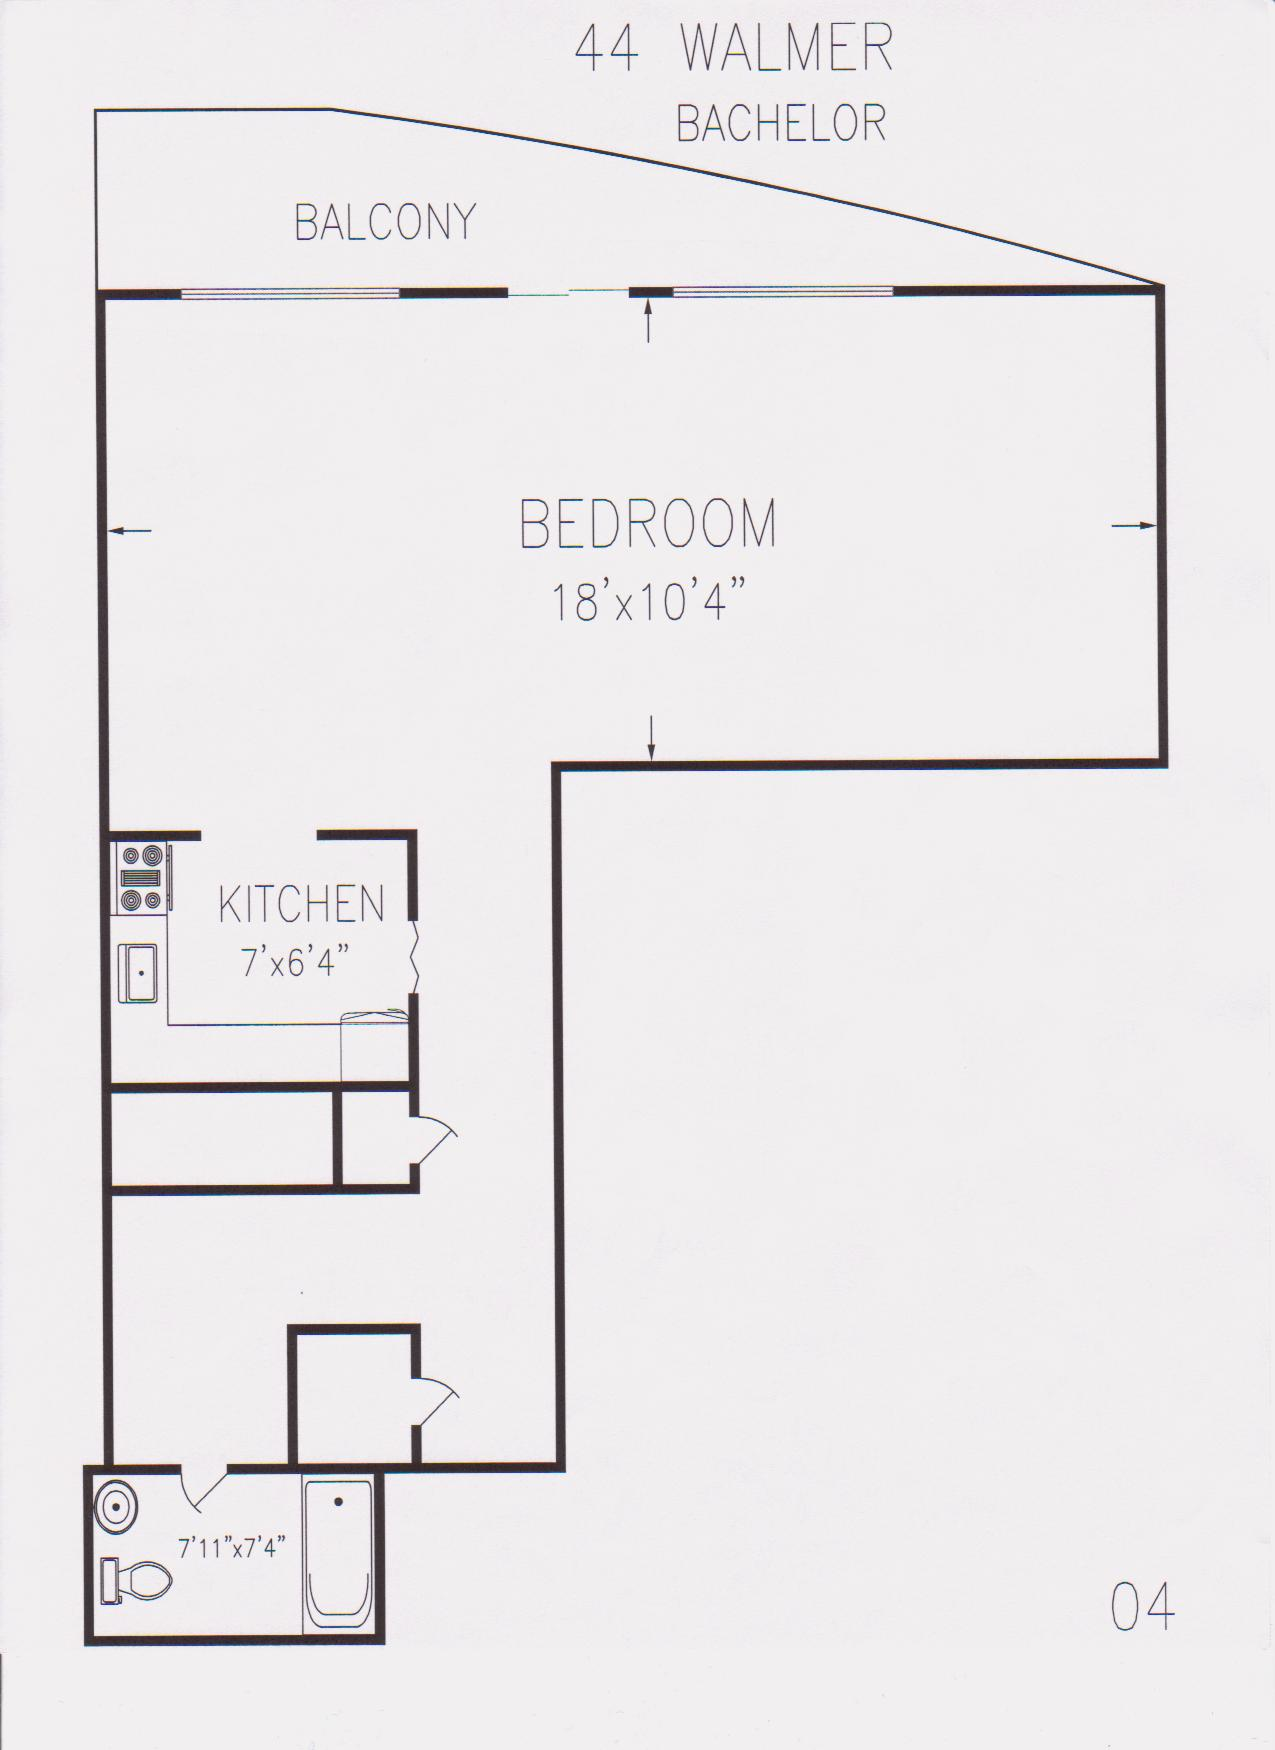 Floor plan for bachelor flat 28 images edmonton for Bach floor plans